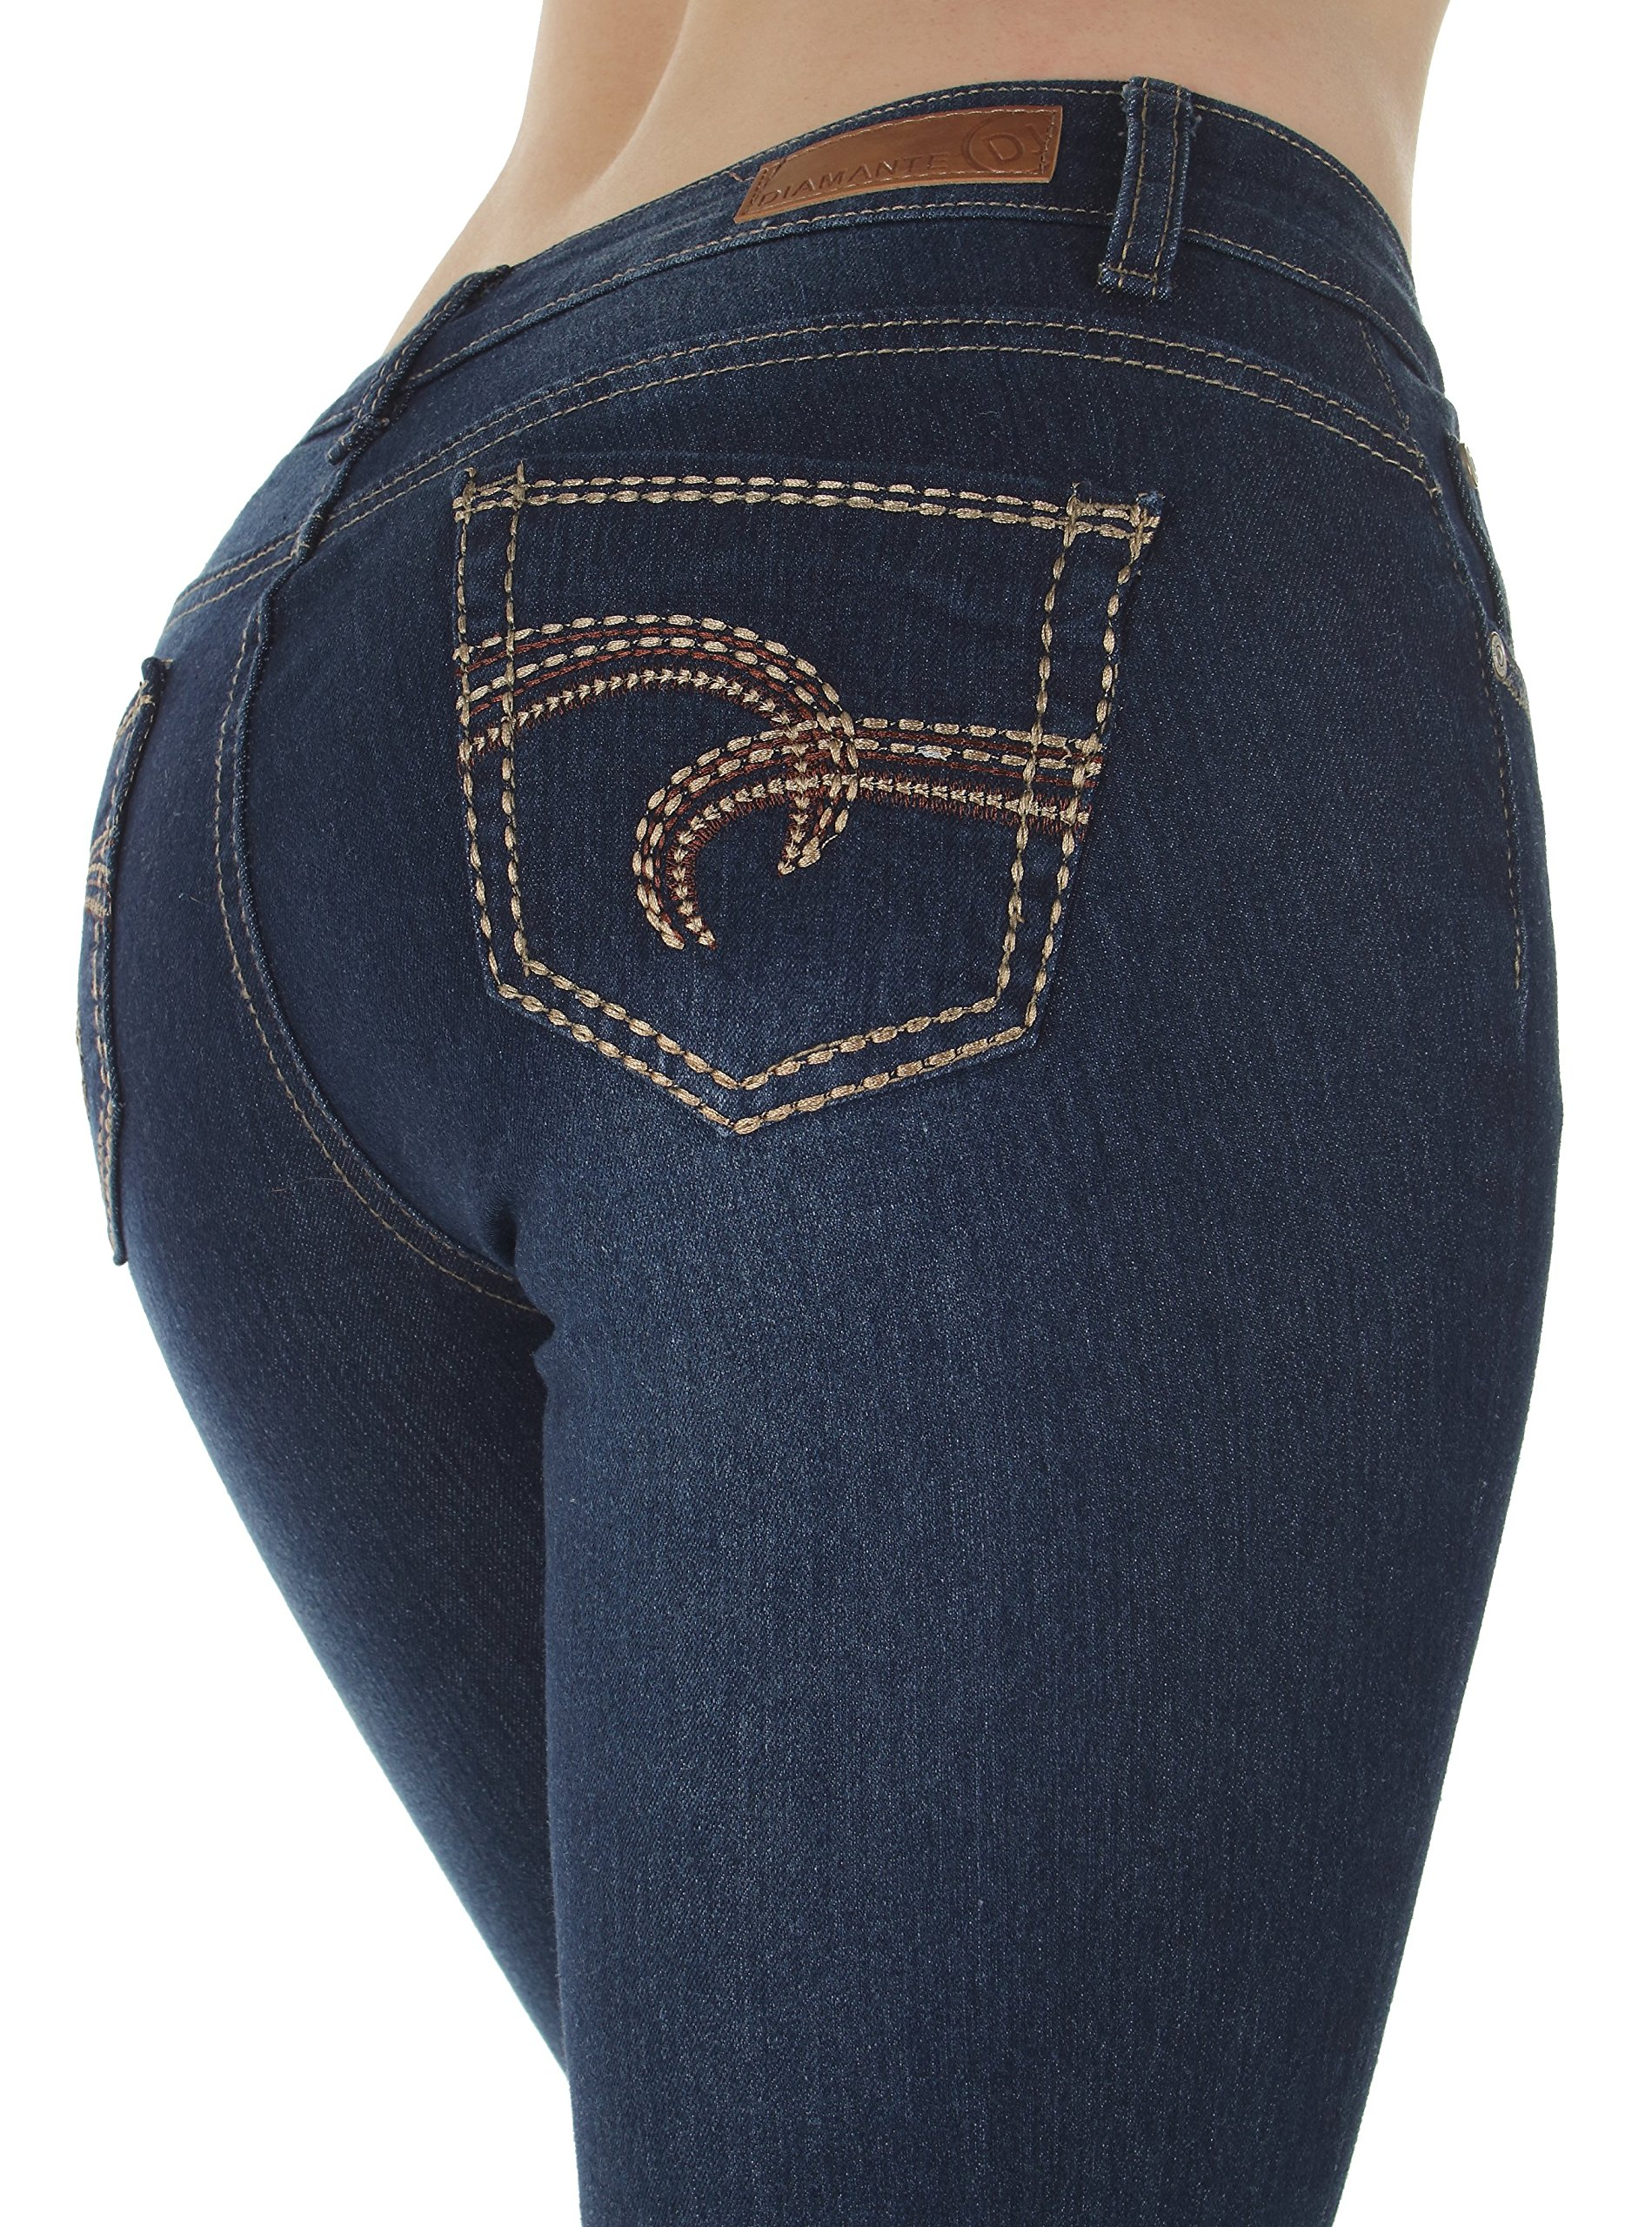 Fashion2Love N536BT – Classic Design, Embellished and Stylish Sexy Low Rise Boot Leg Jeans in Navy Size 7